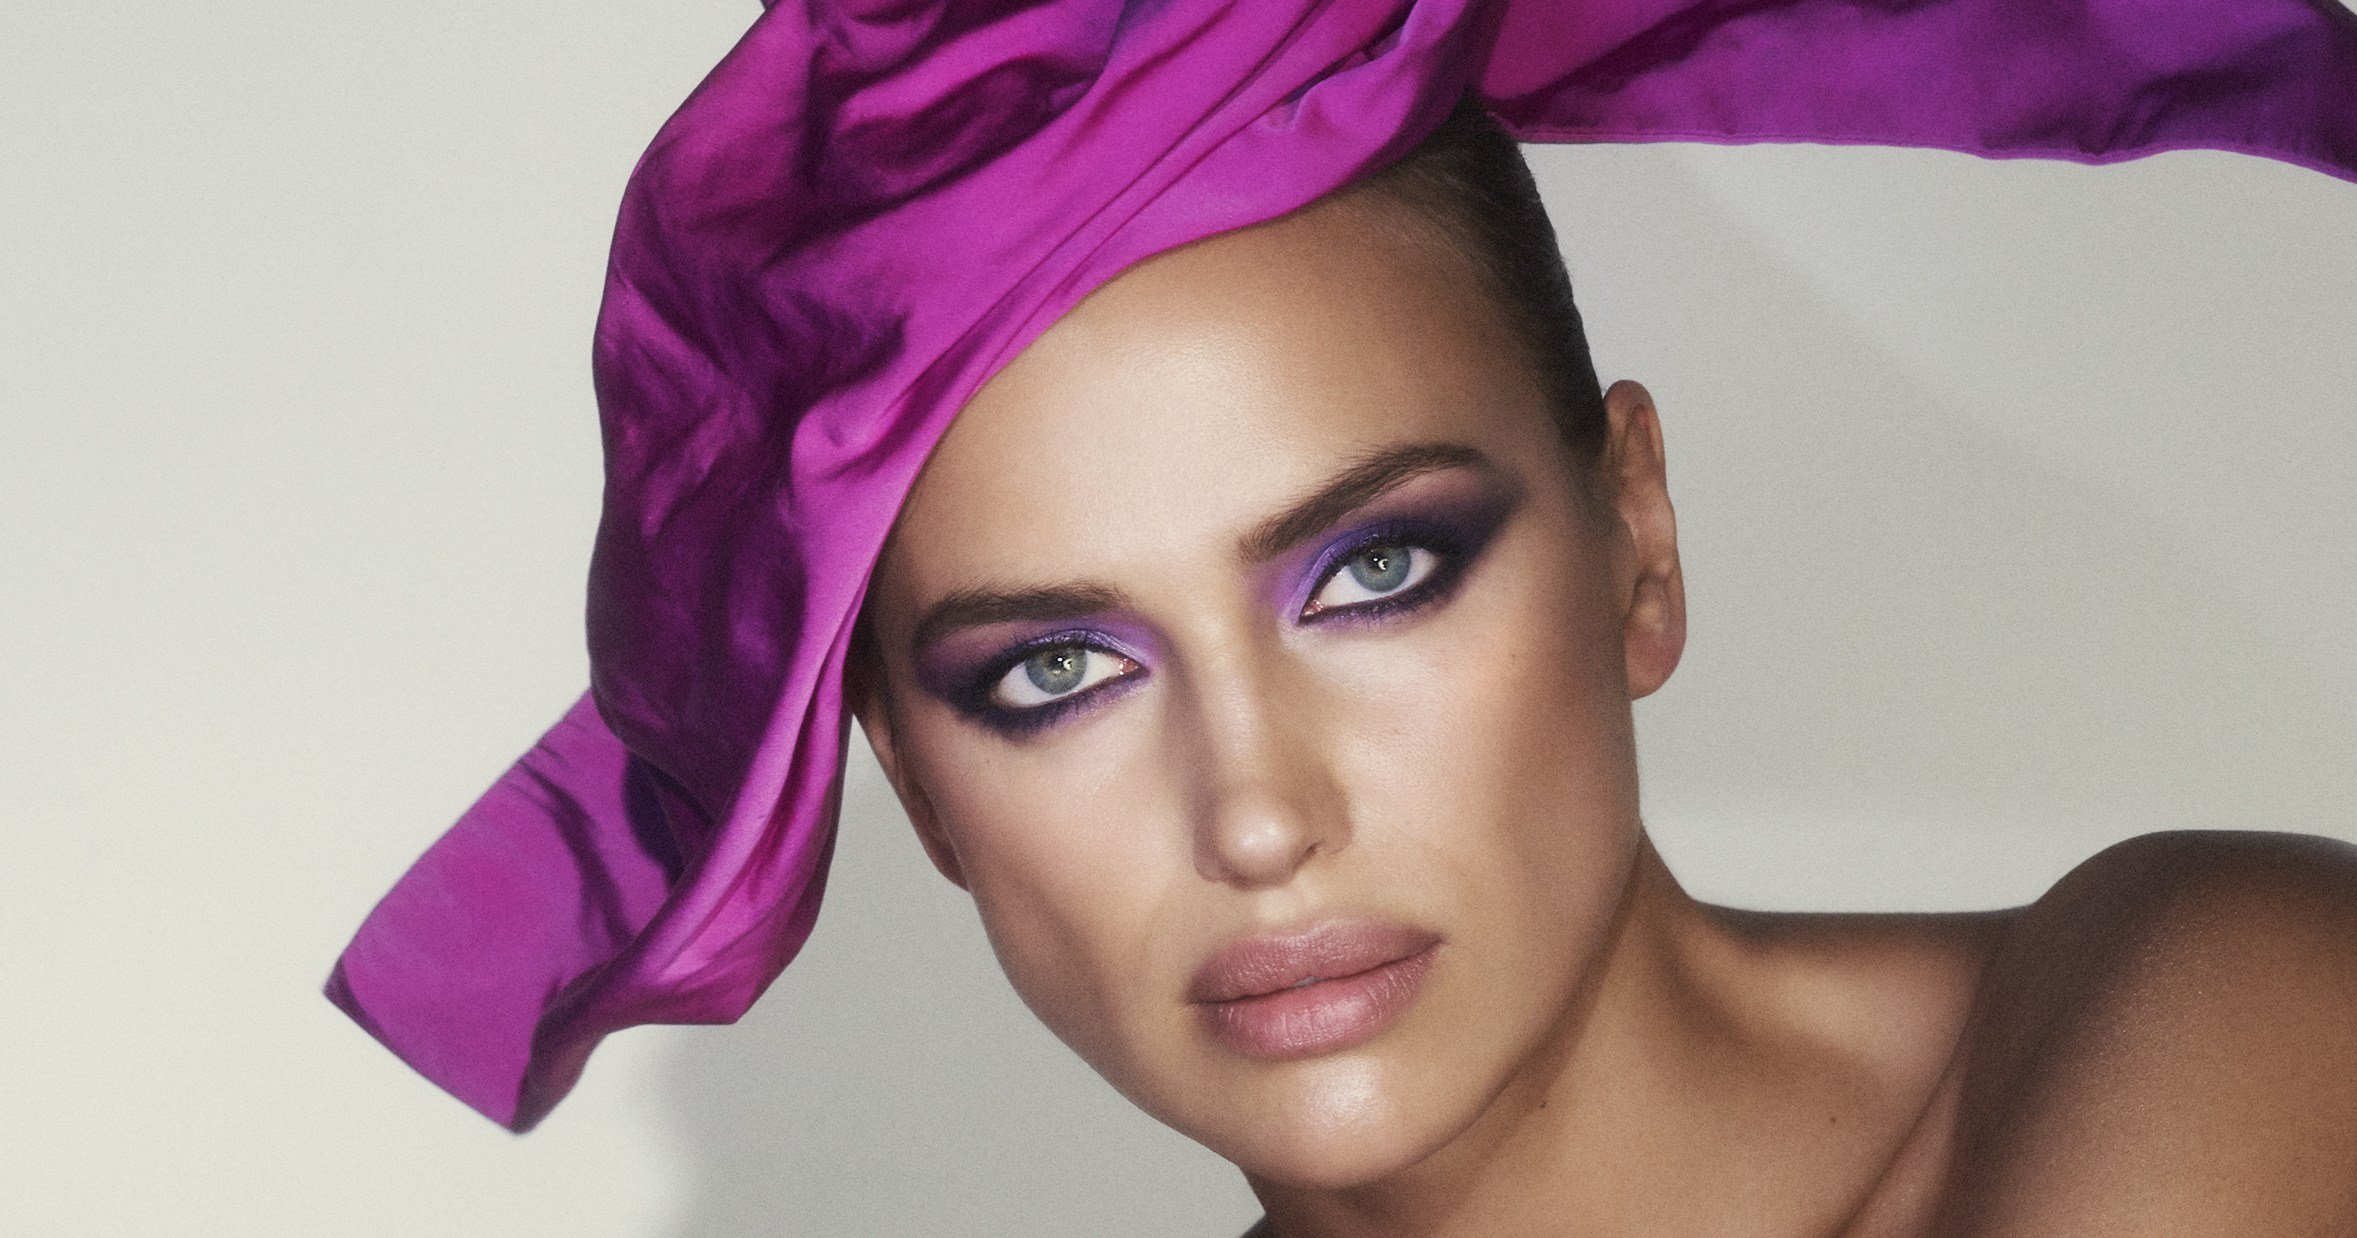 Irina Shayk Is the New Face of Marc Jacobs and the Campaign Is Stunning